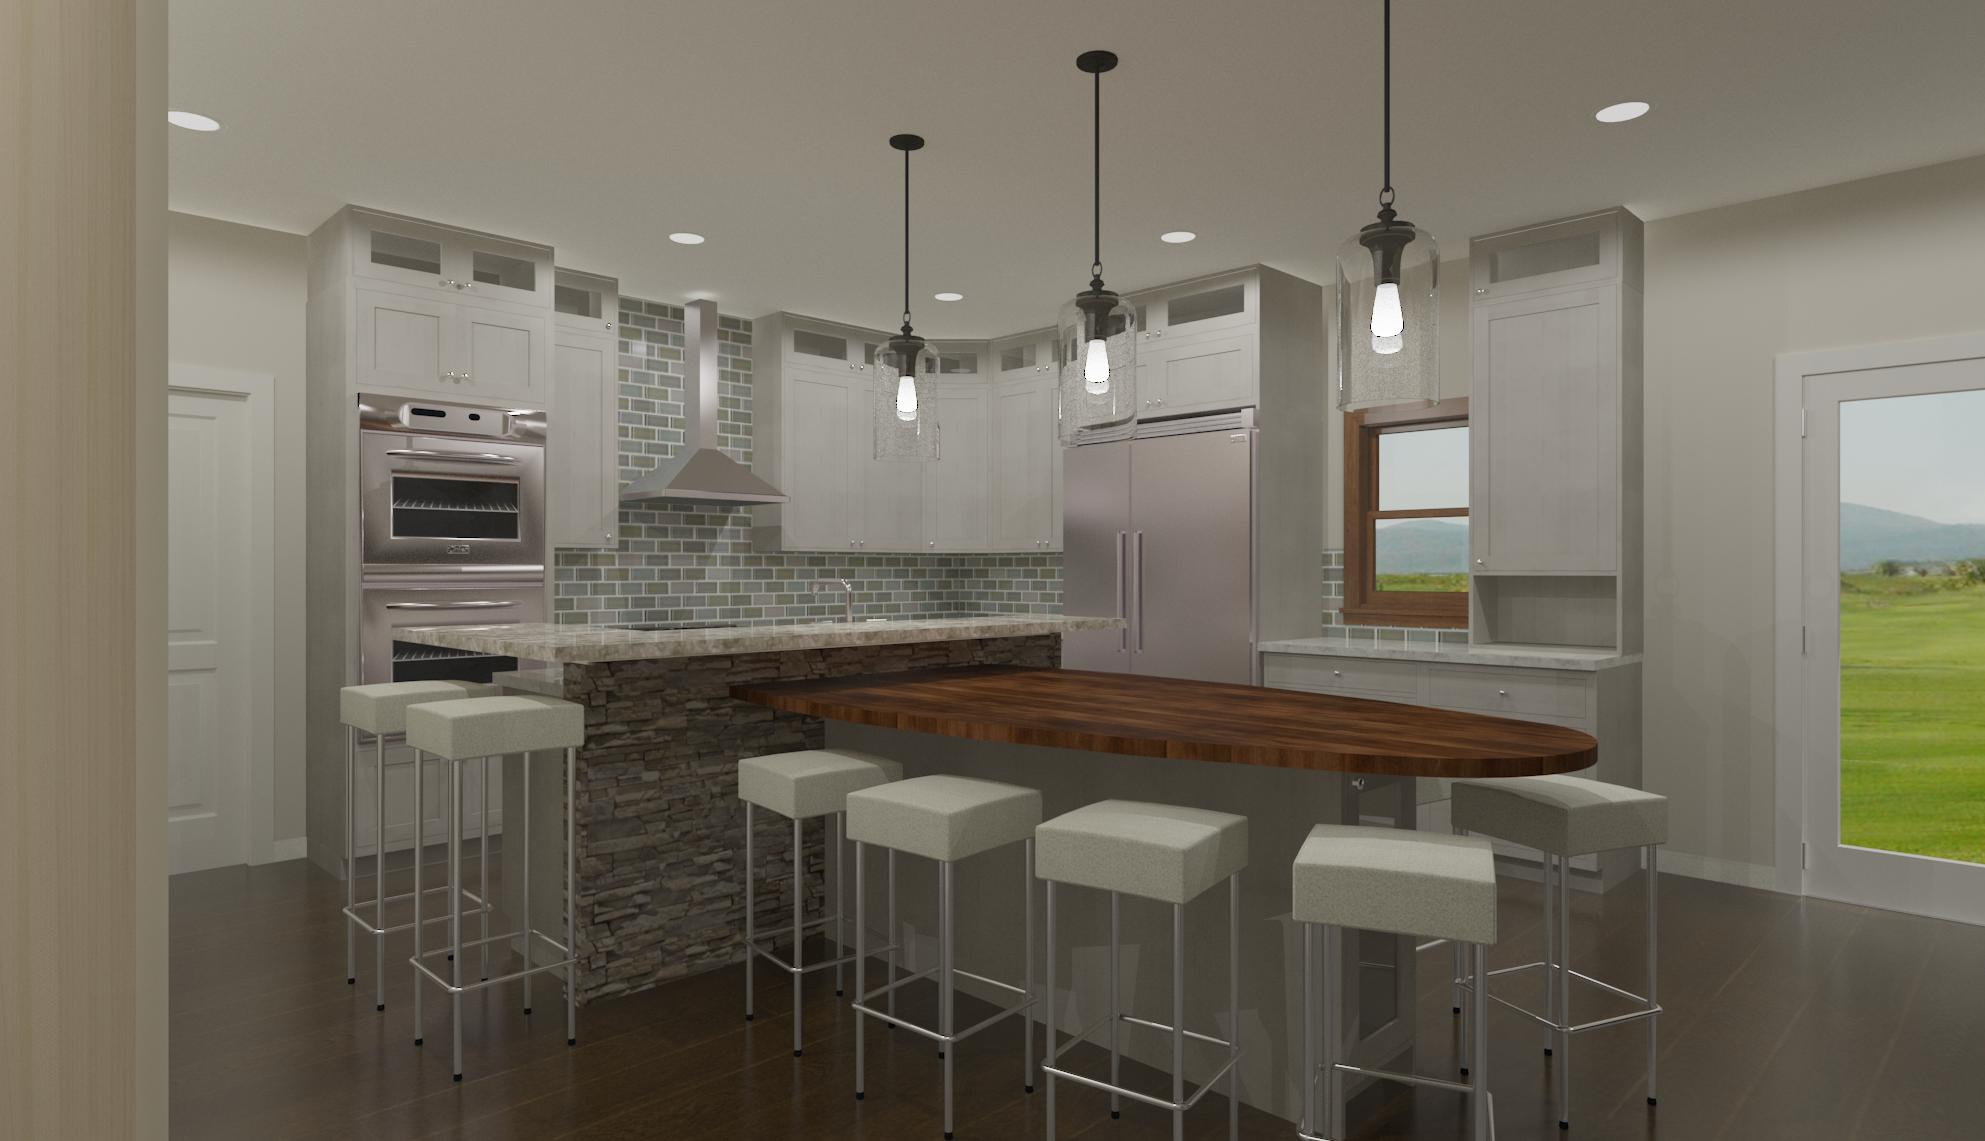 Smith Res Proposed Kitchen Rendering View 02.jpg